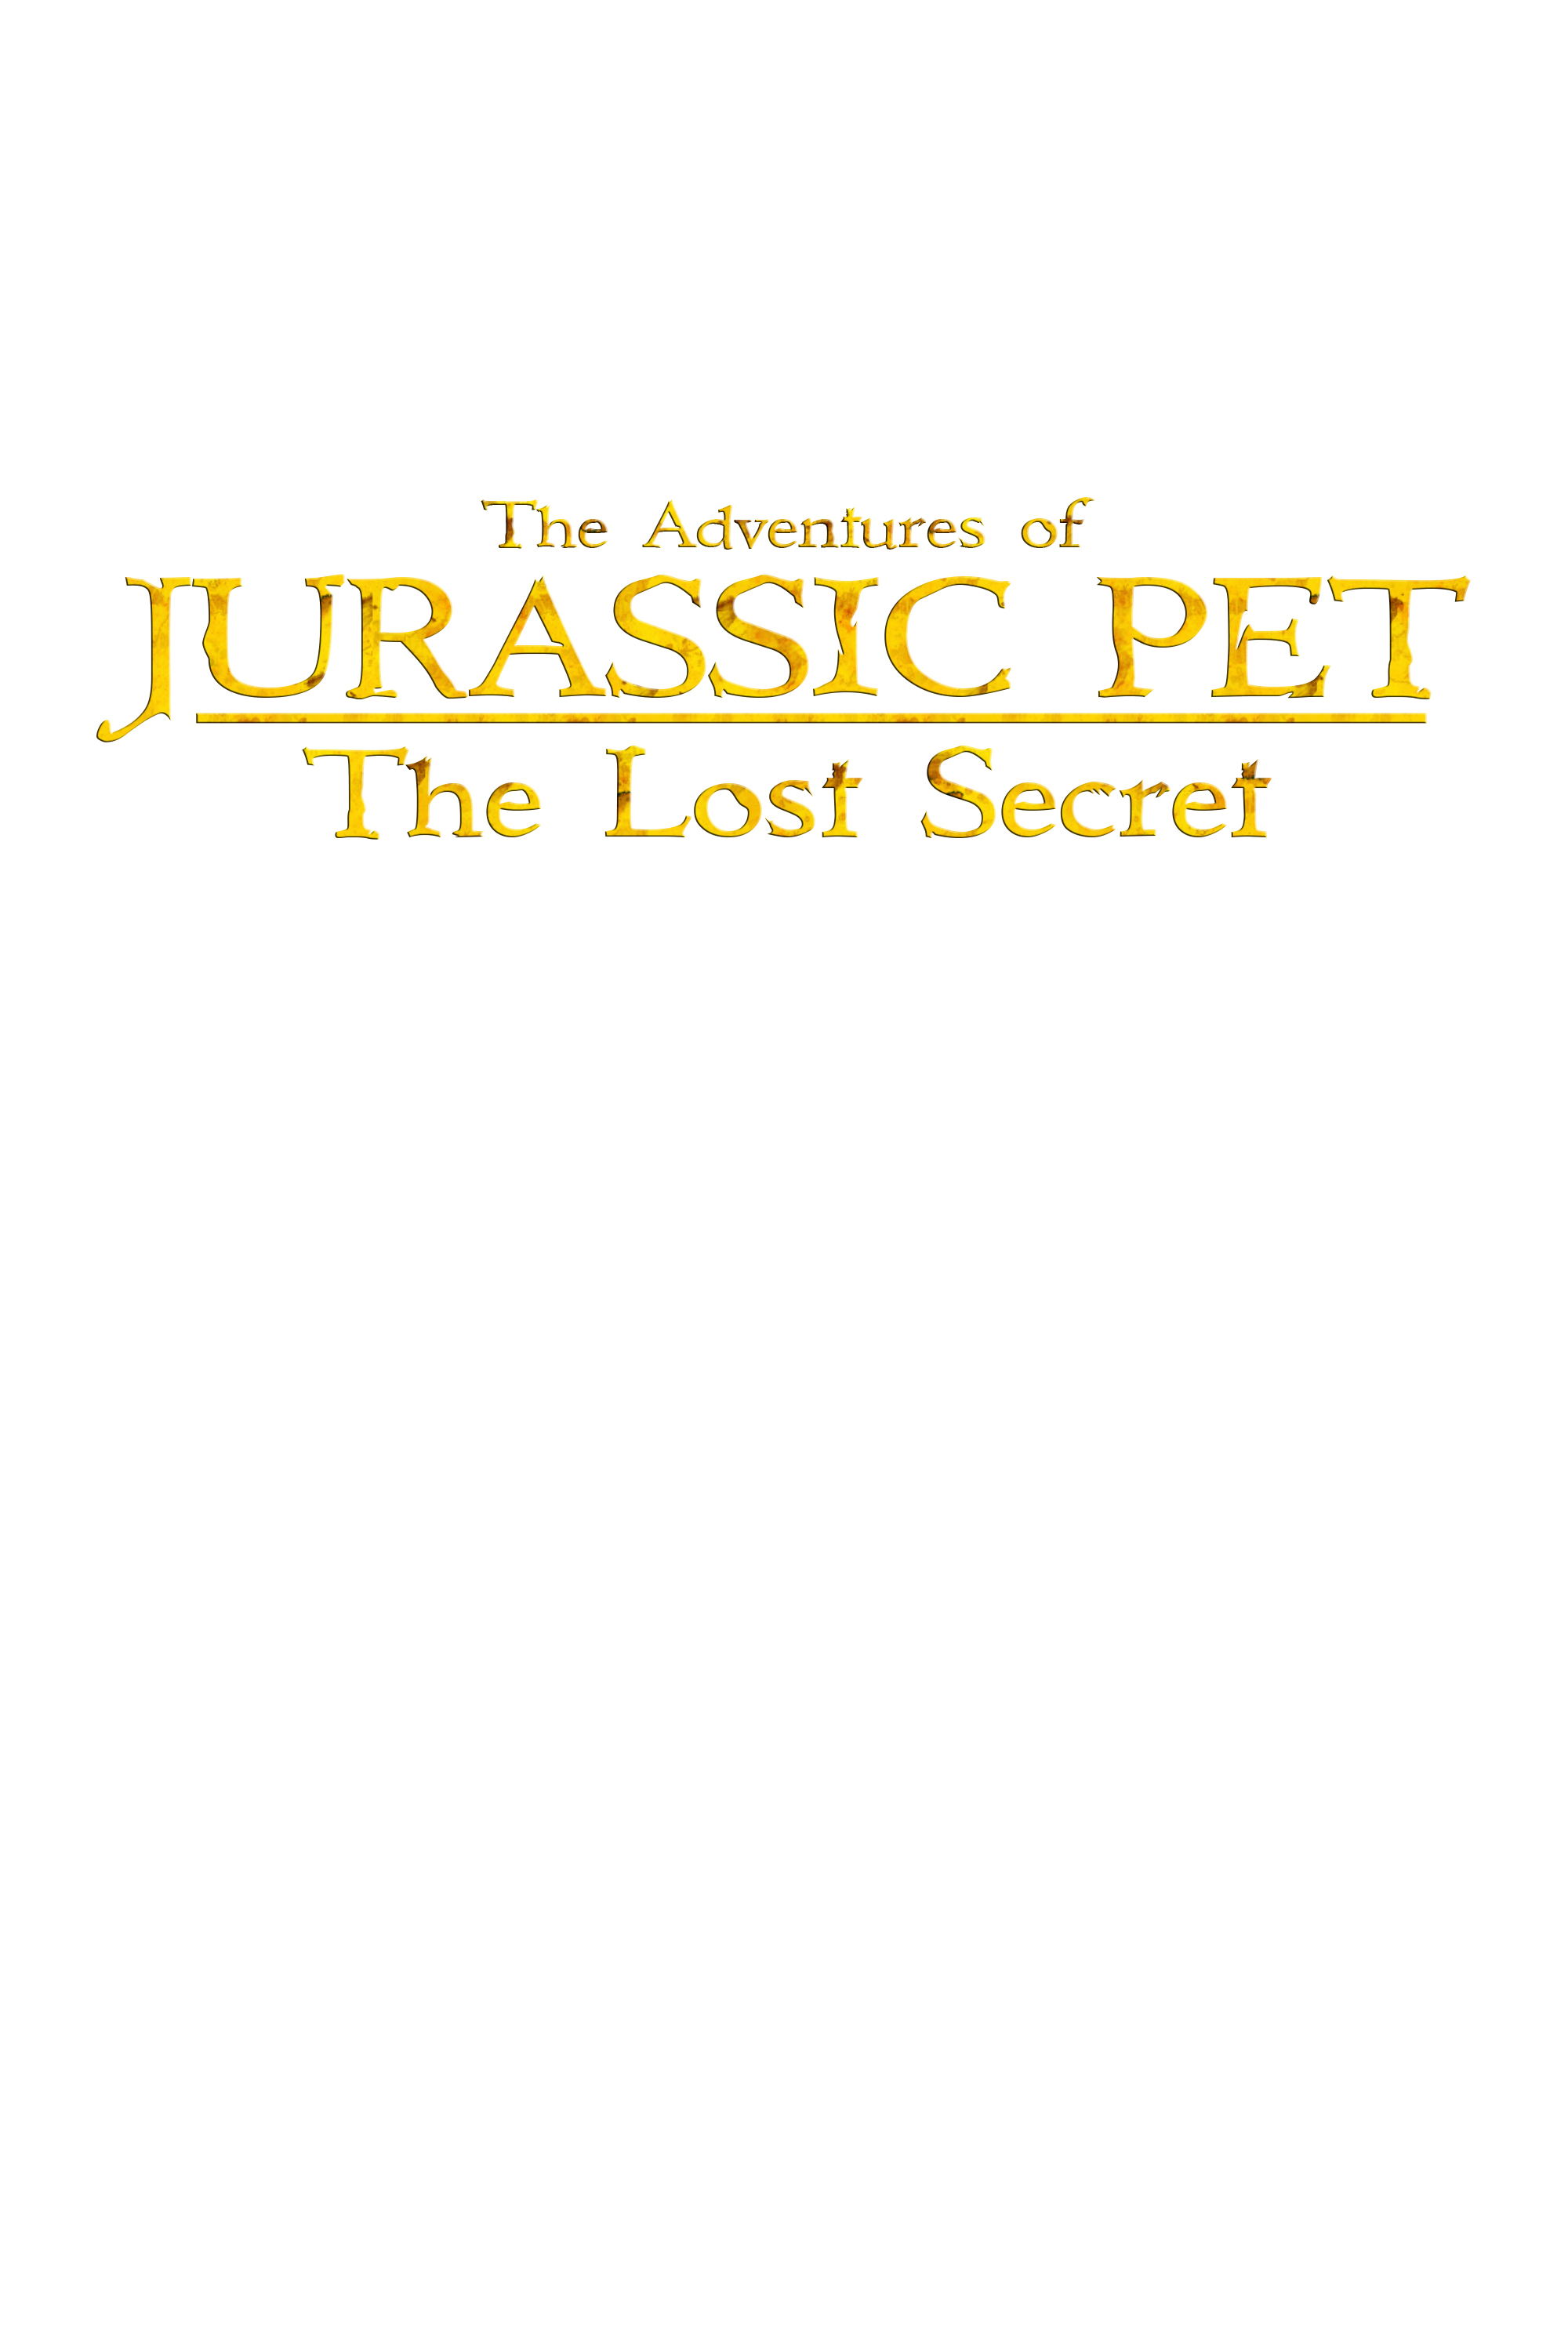 The Adventures of Jurassic Pet : The Lost Secret